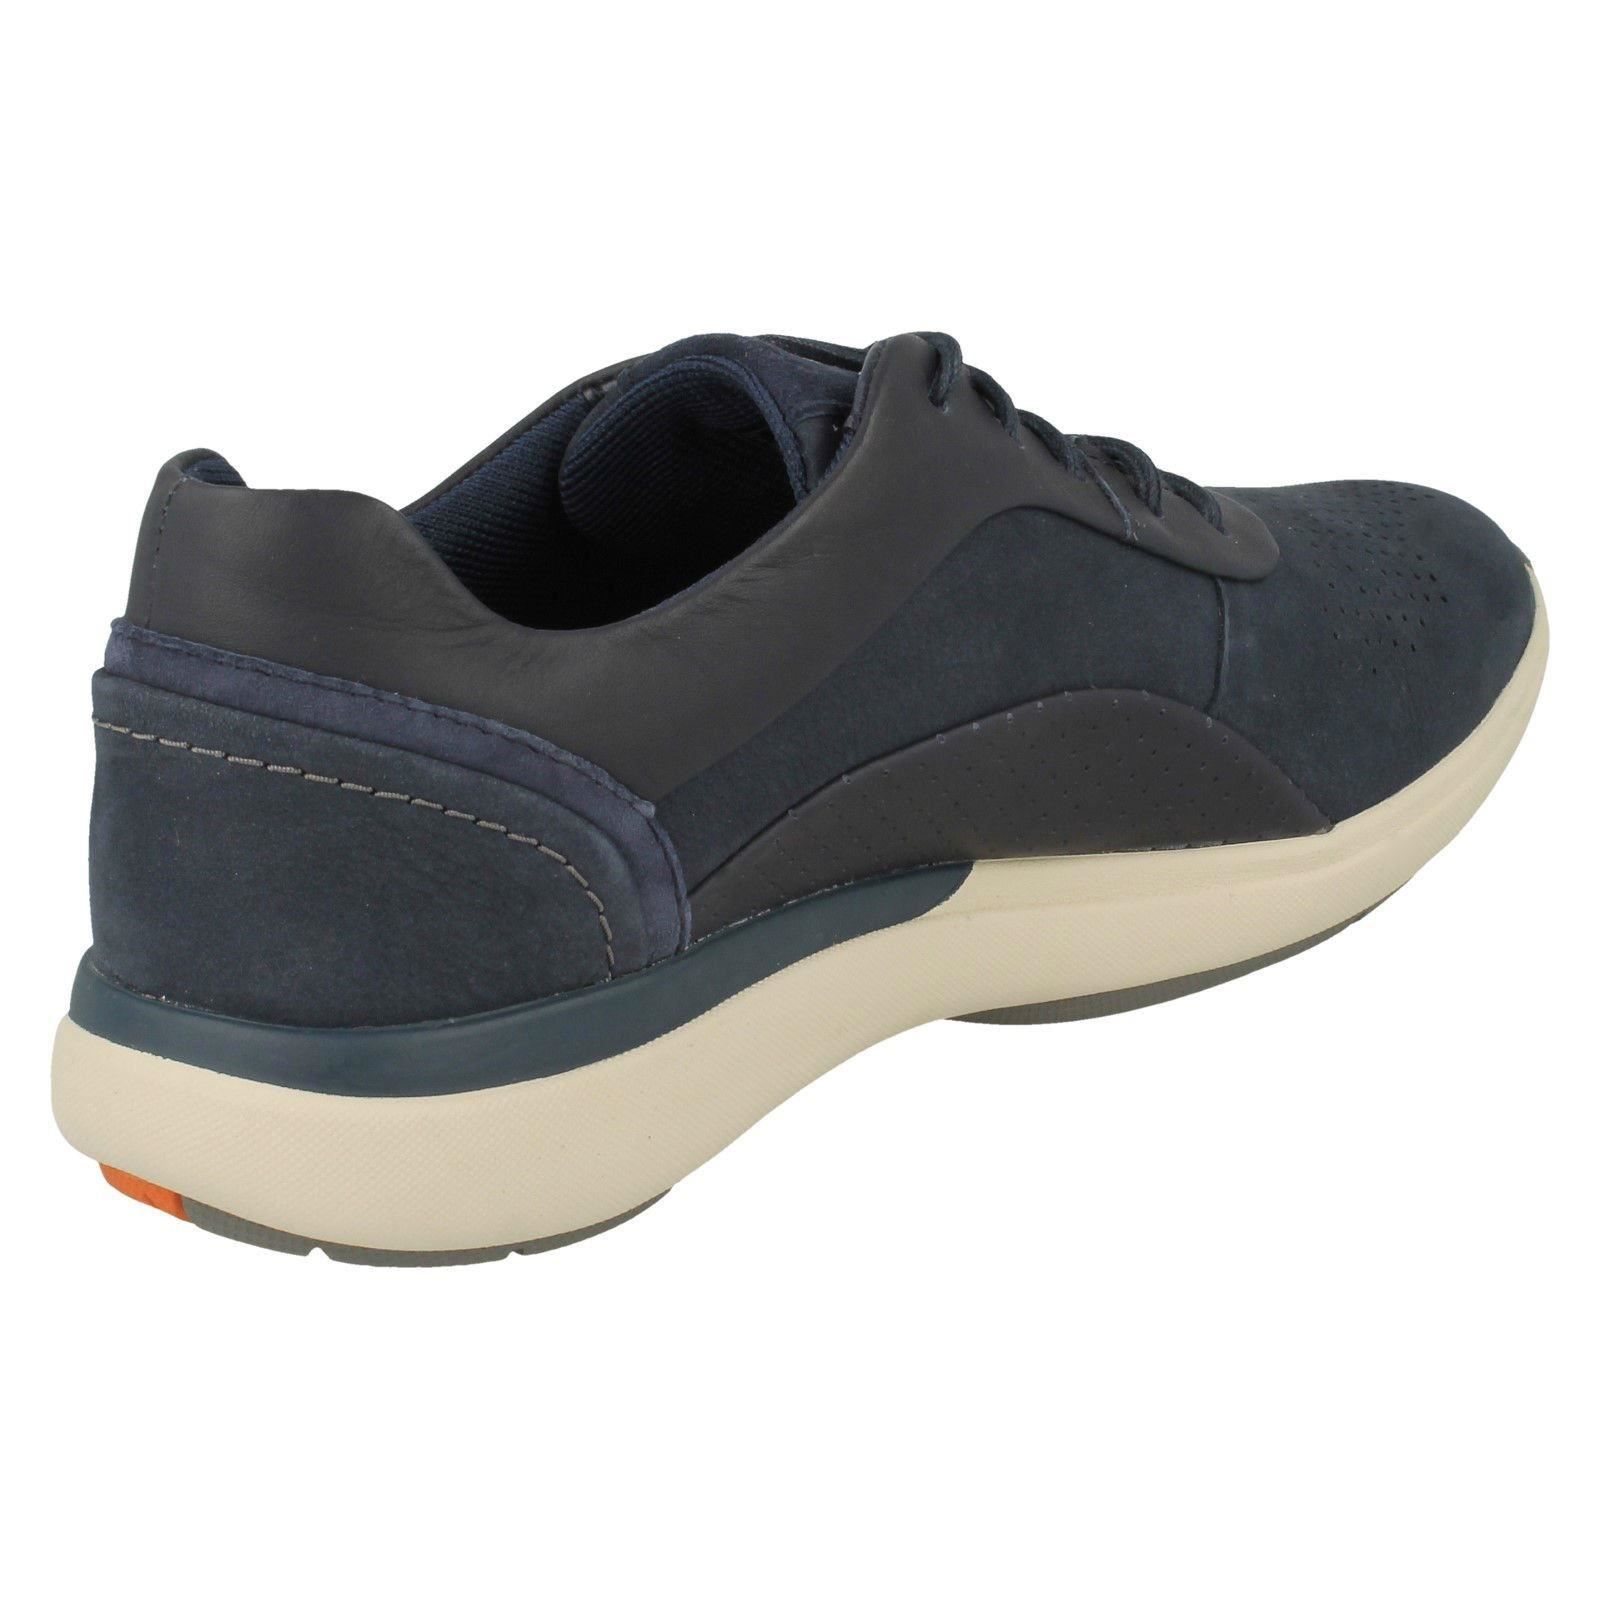 Ladies Clarks Casual Unstructured